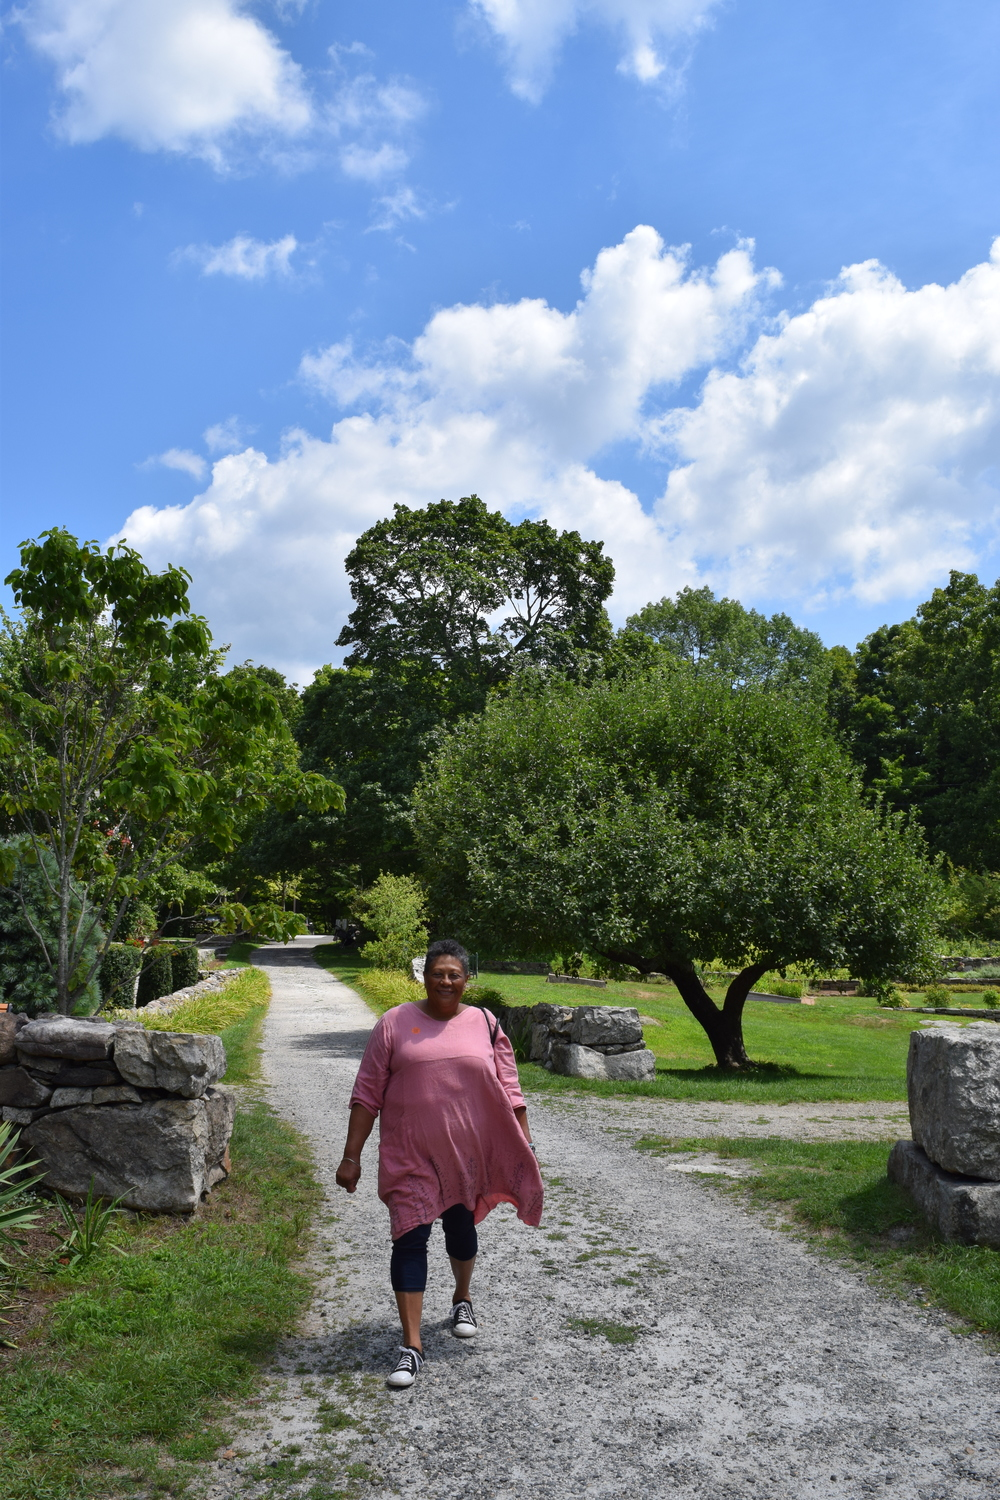 Poet Marilyn Nelson at Weir Farm